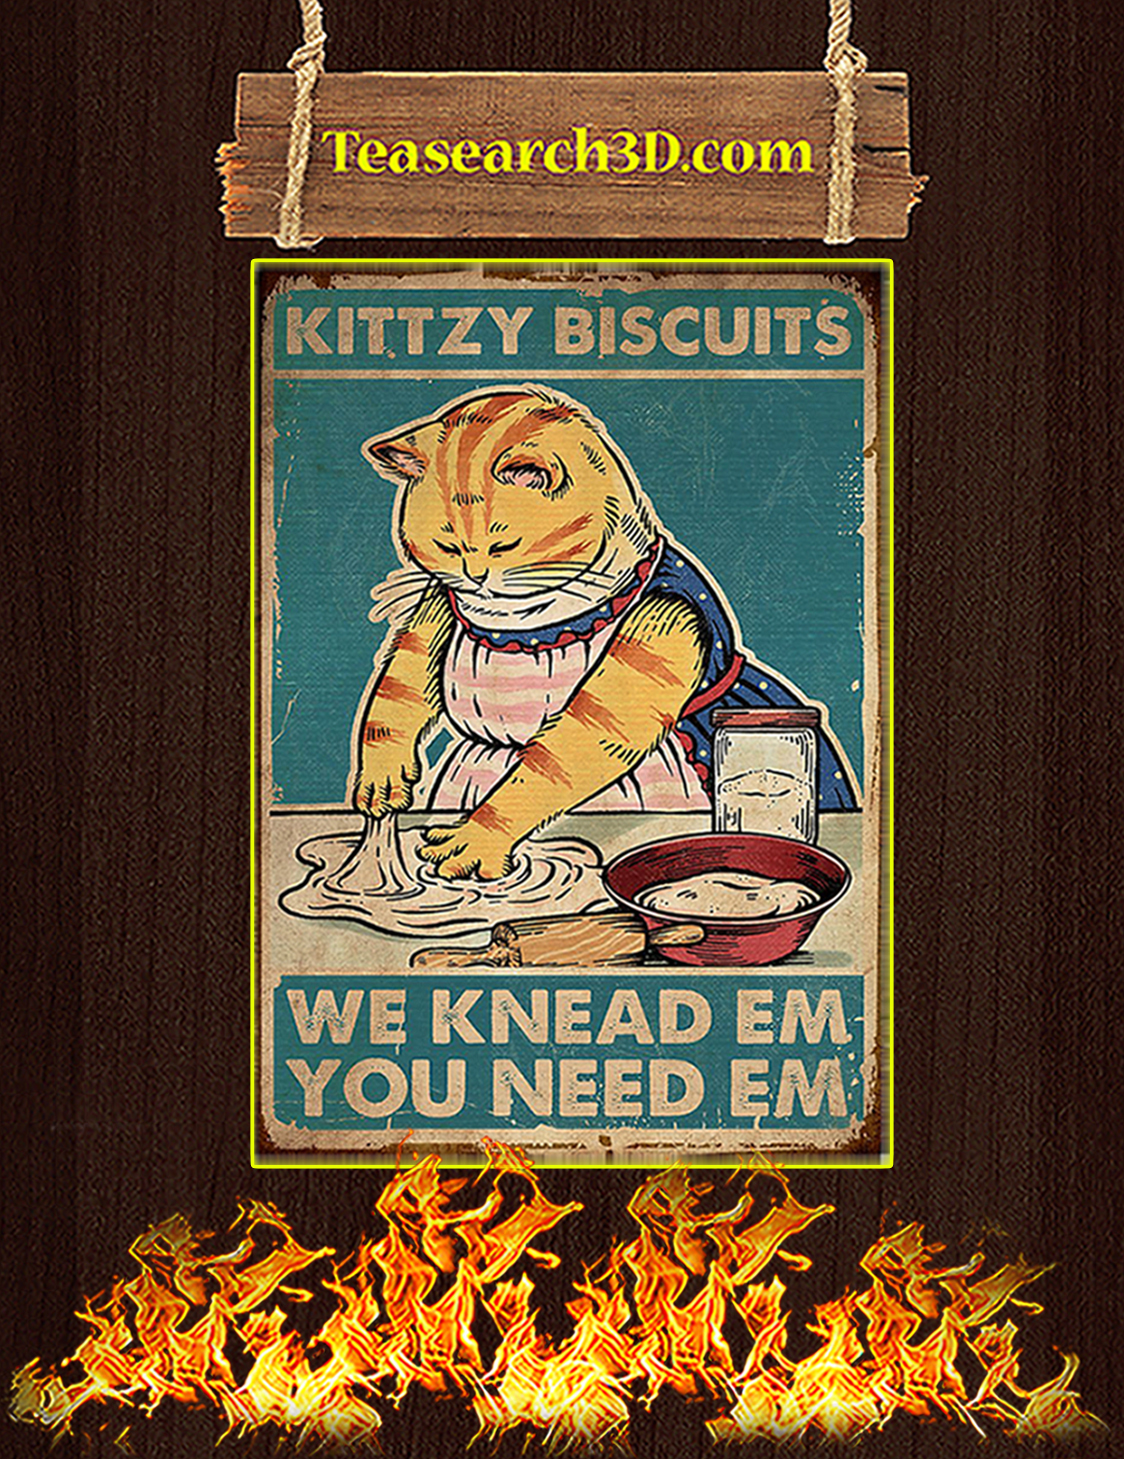 Cat Kittzy Biscuits We Knead Em You Need Em Poster A3